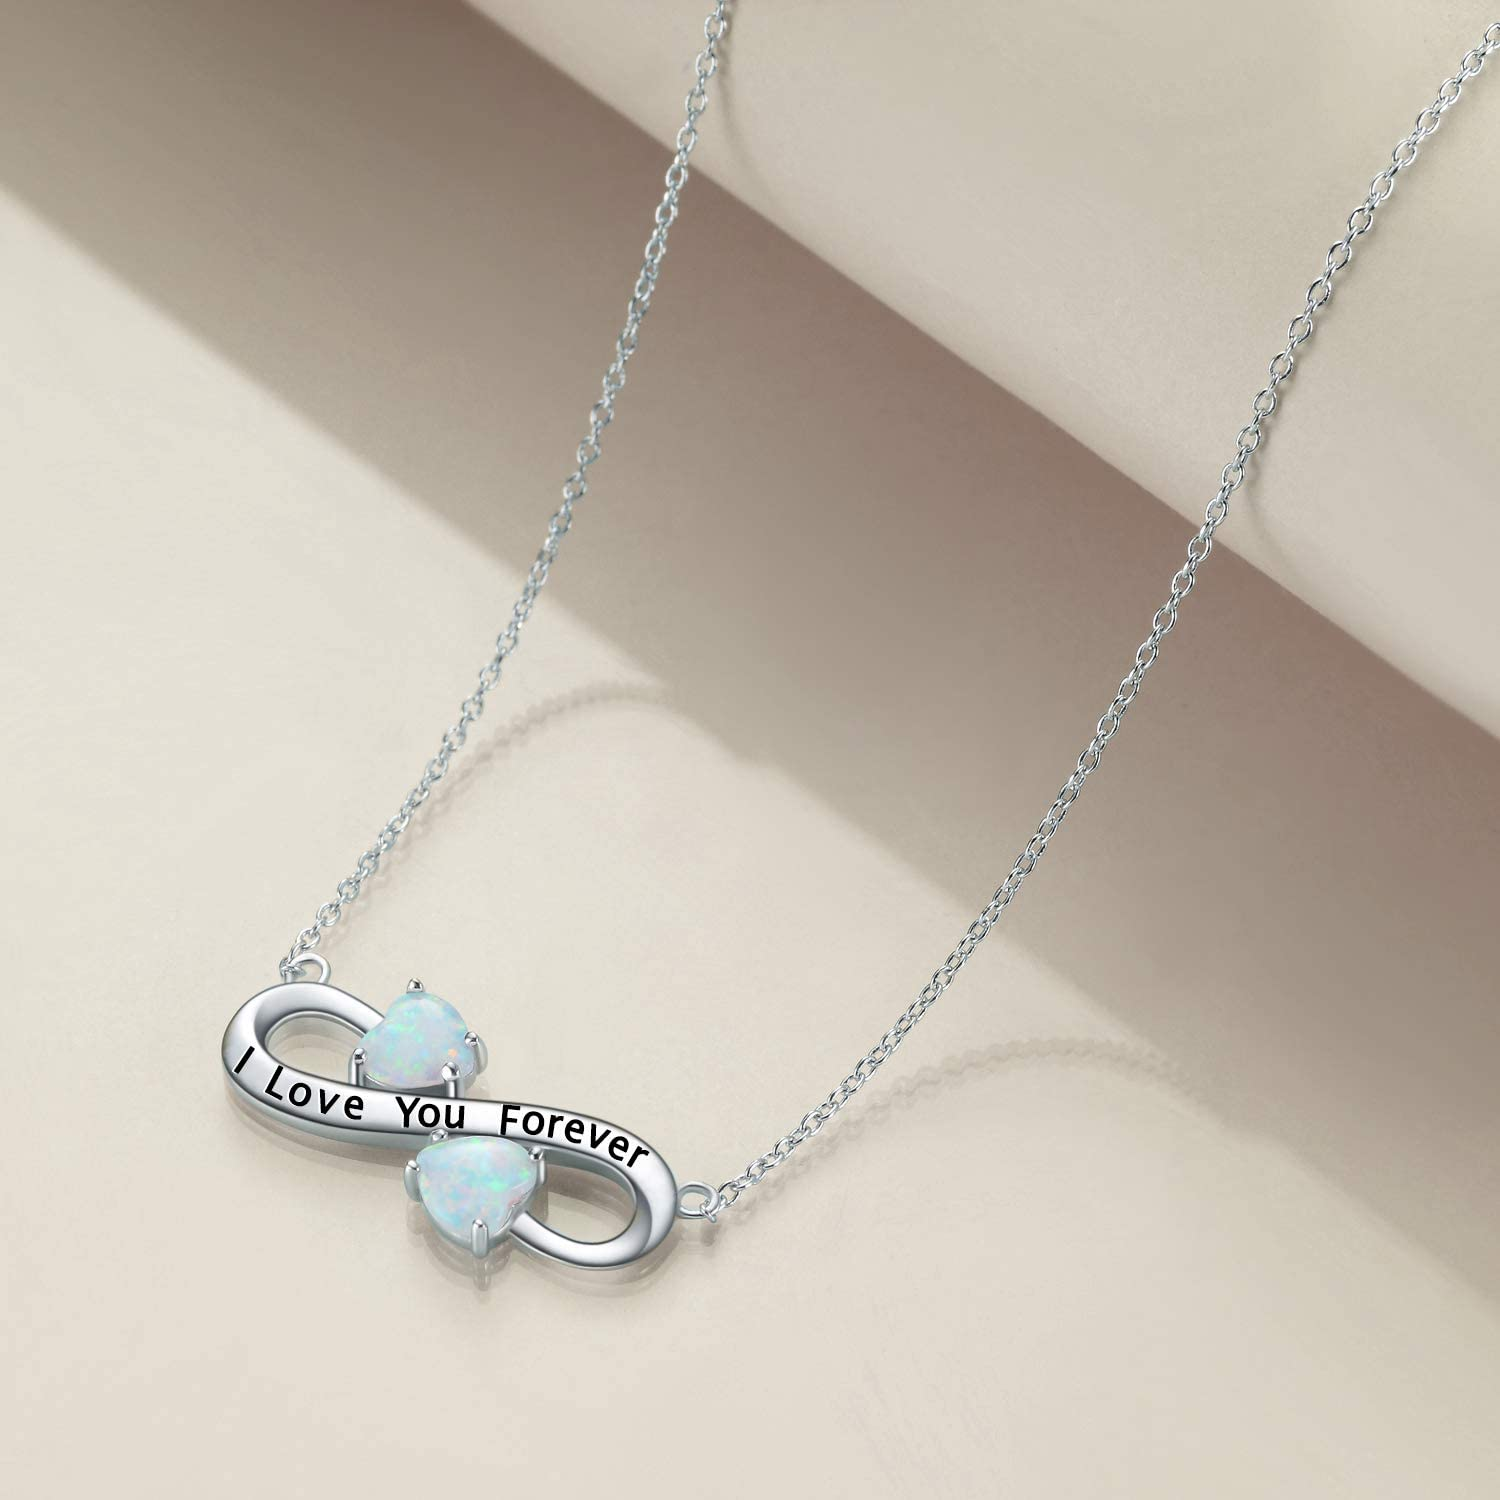 YFN I Love You Forever Sterling Silver Pendant Necklace Birthday Gift Jewelry 18Inch